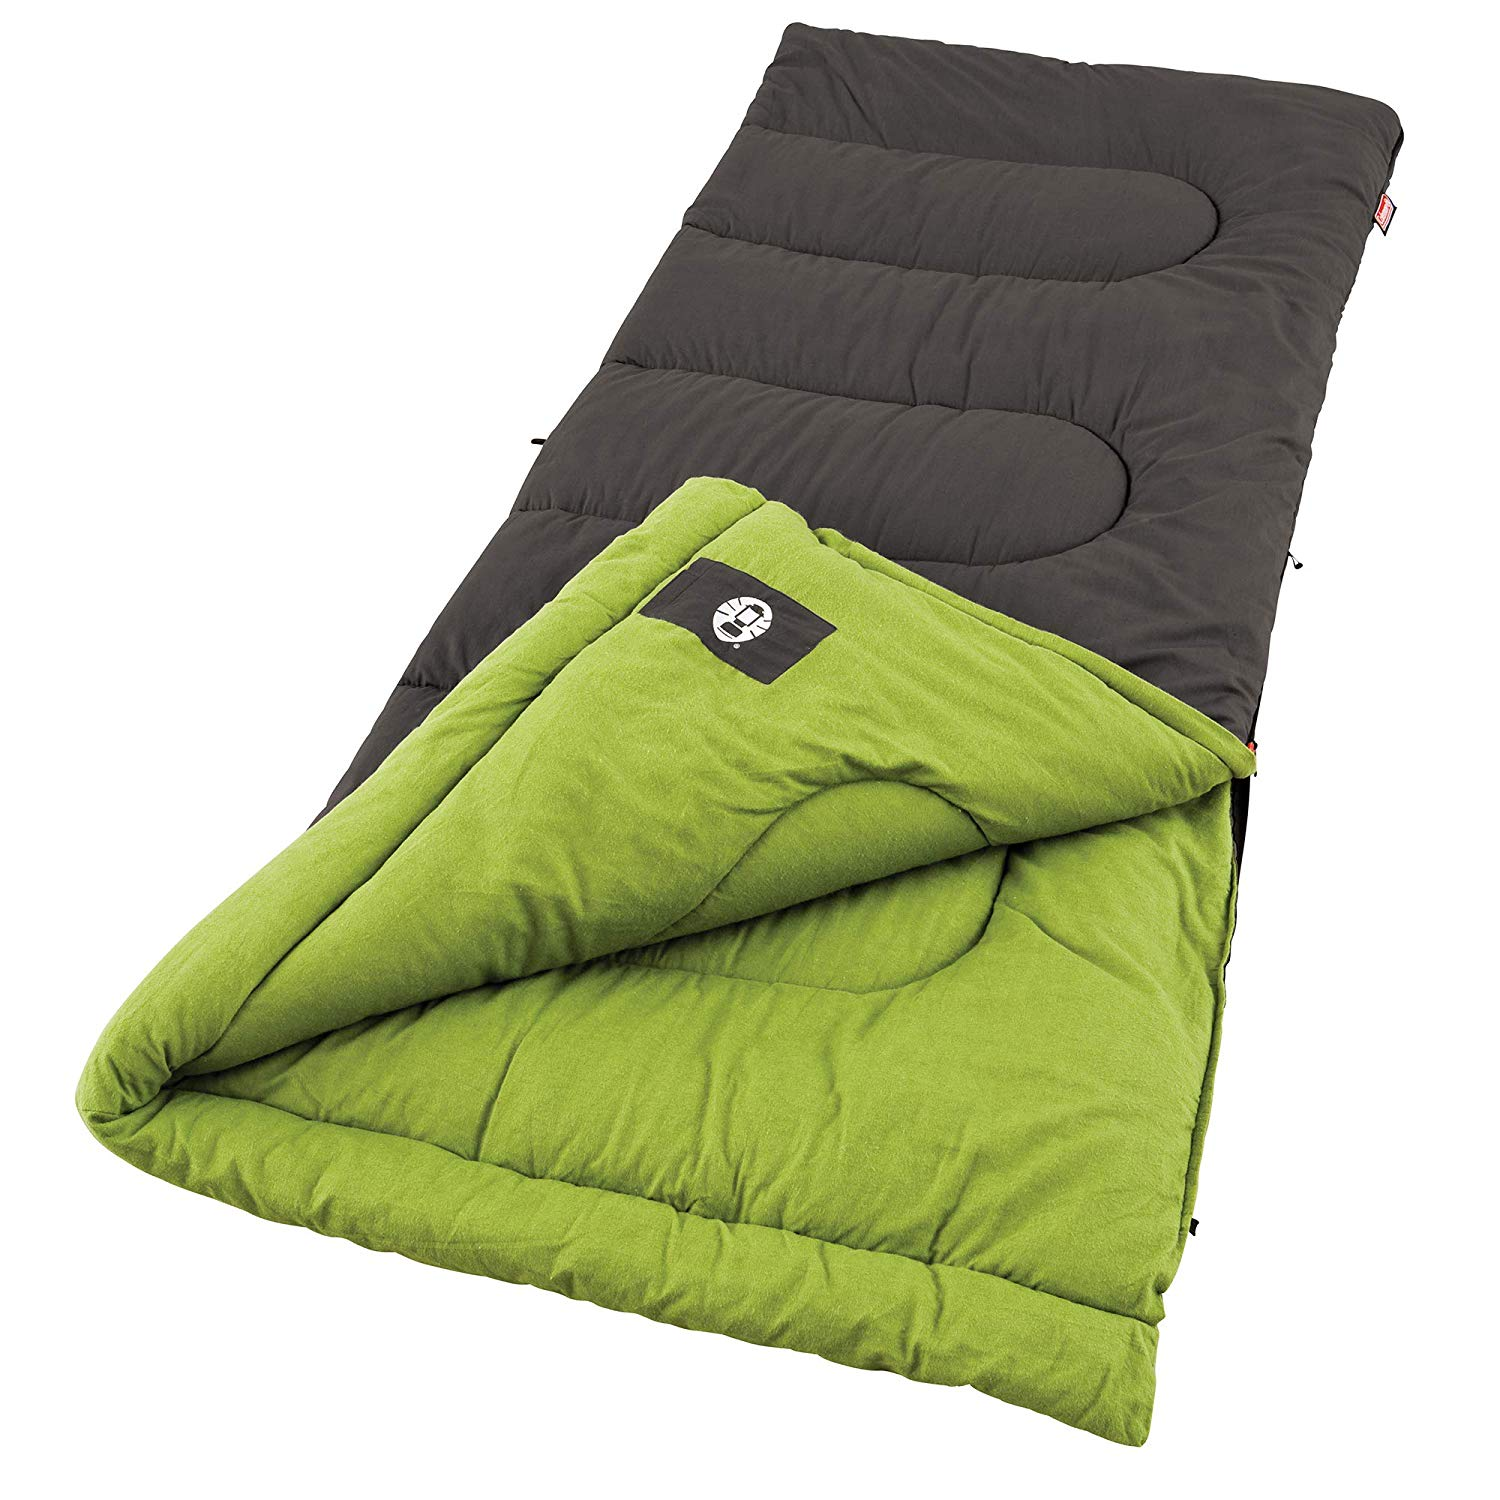 An image related to Coleman Duck Harbor 2000004454 Men's Cotton Flannel Sleeping Bag